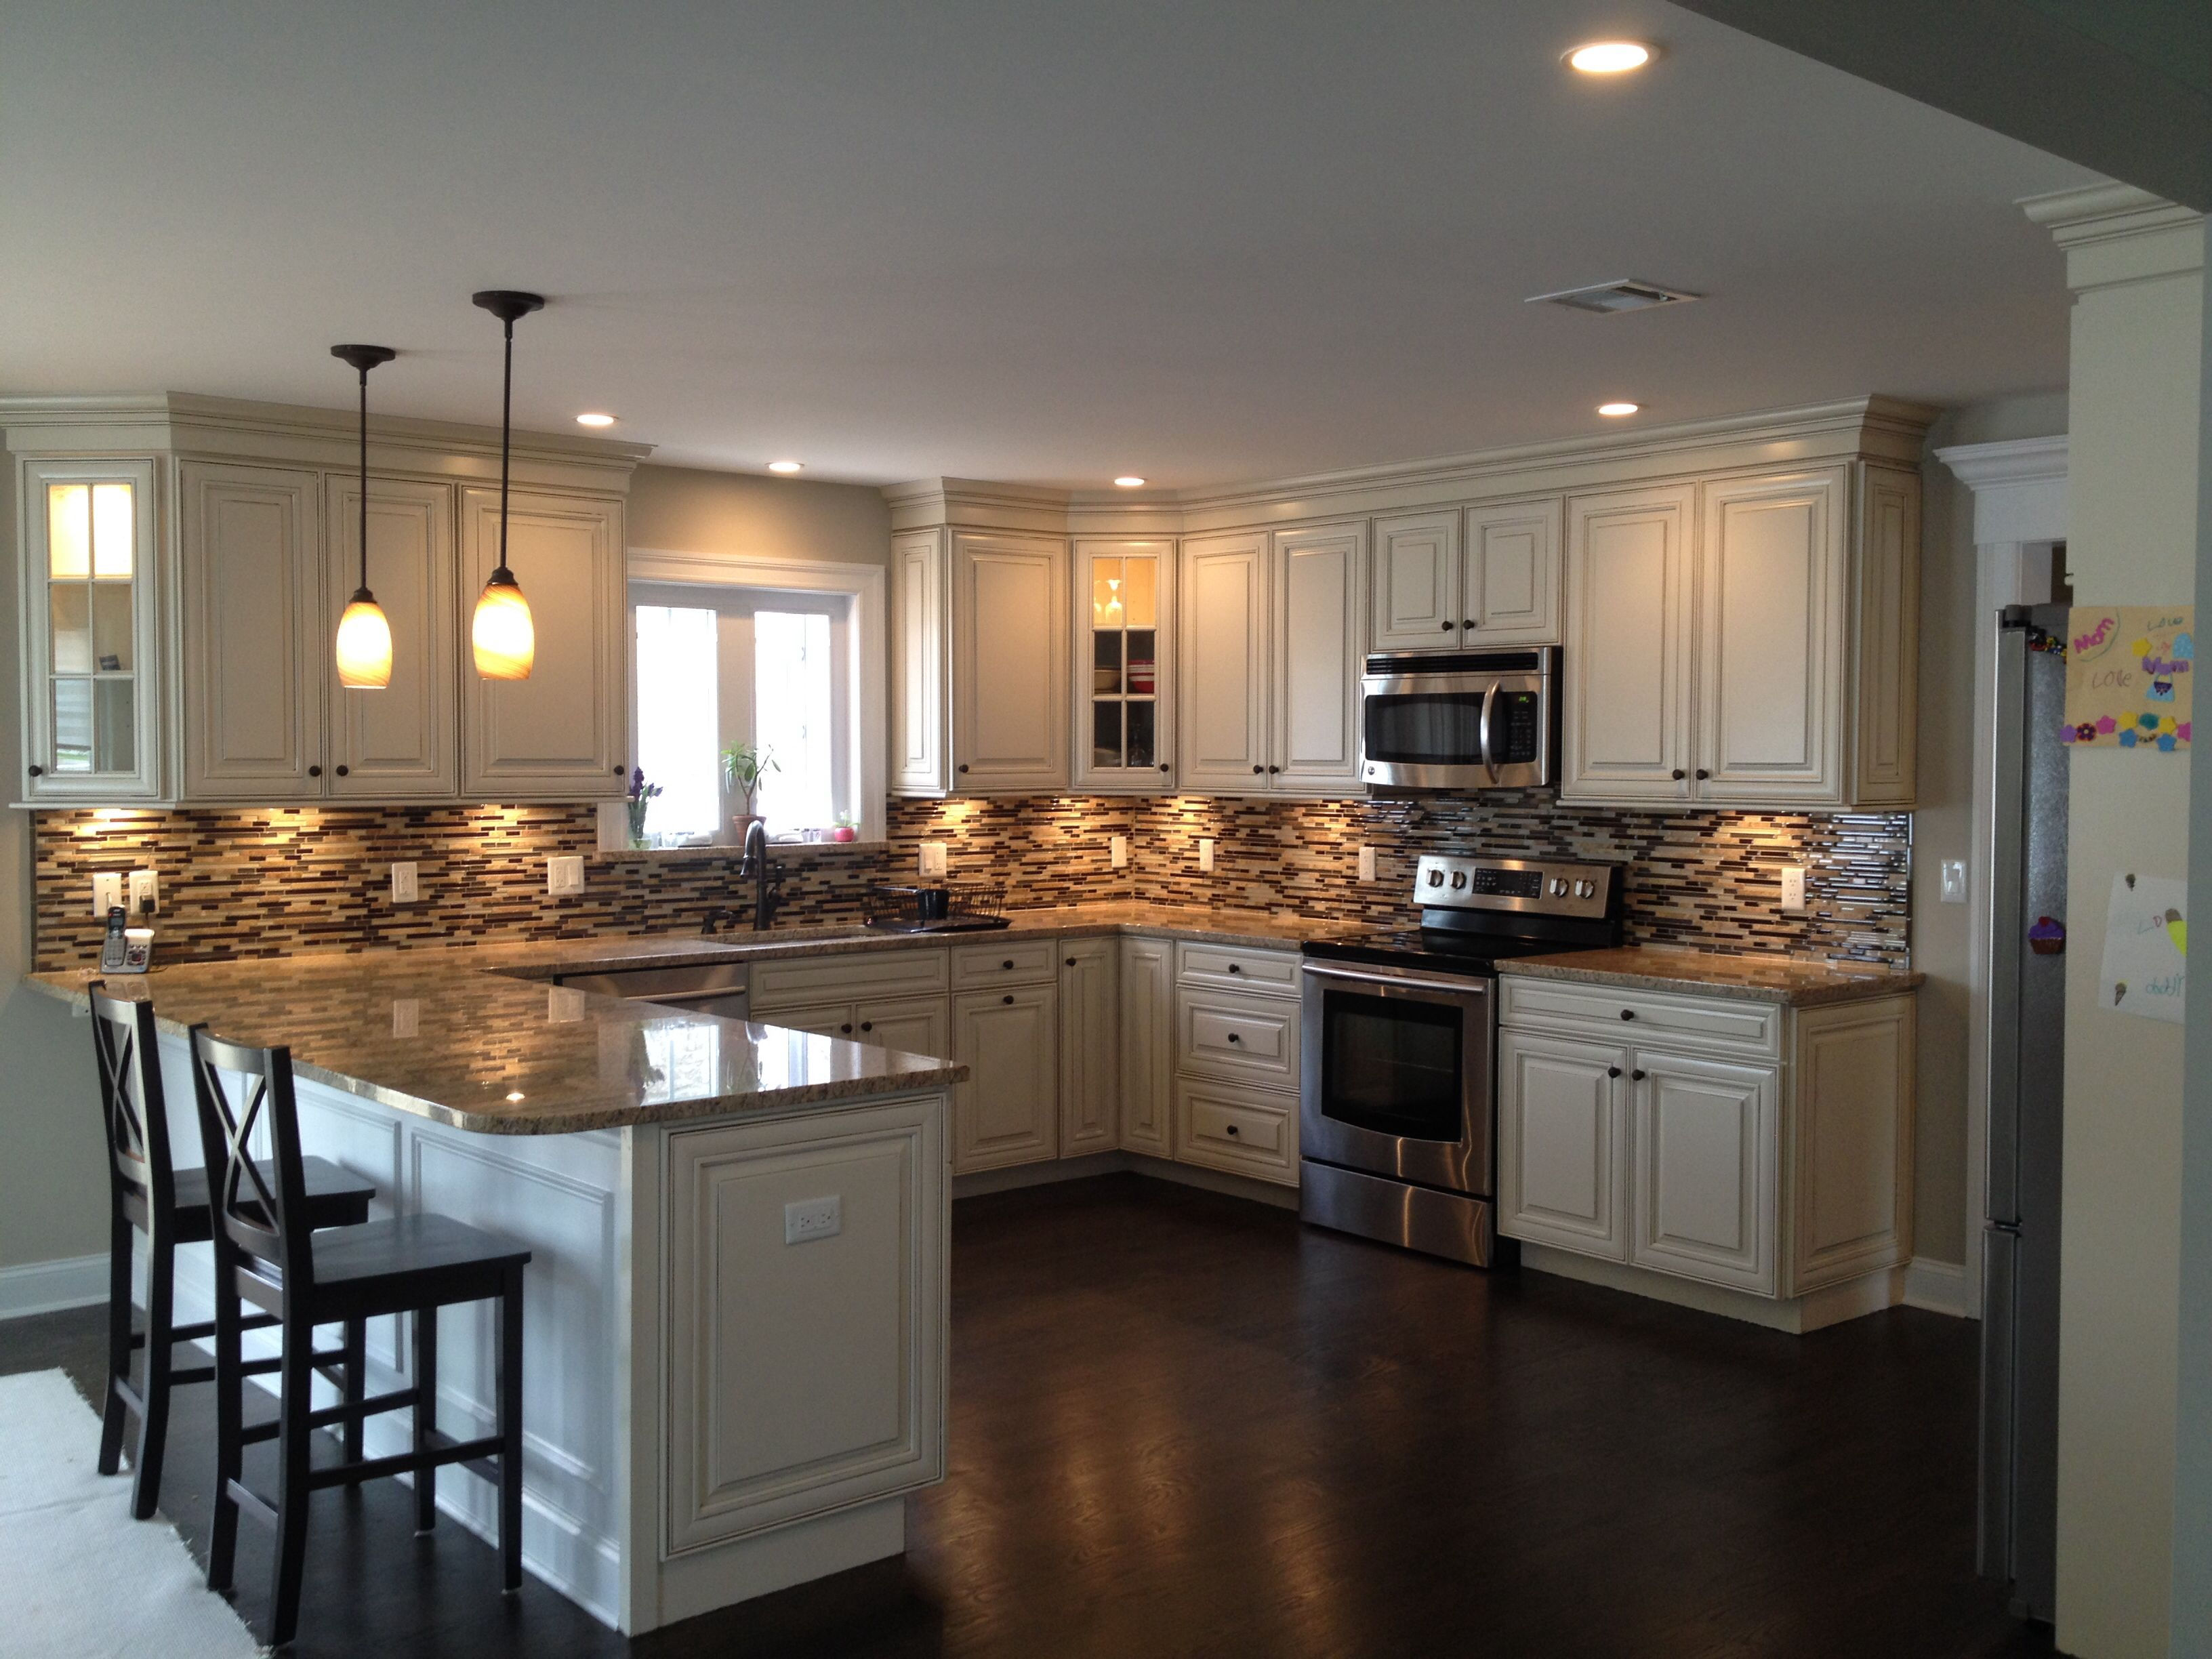 U shaped kitchen with peninsula design with American